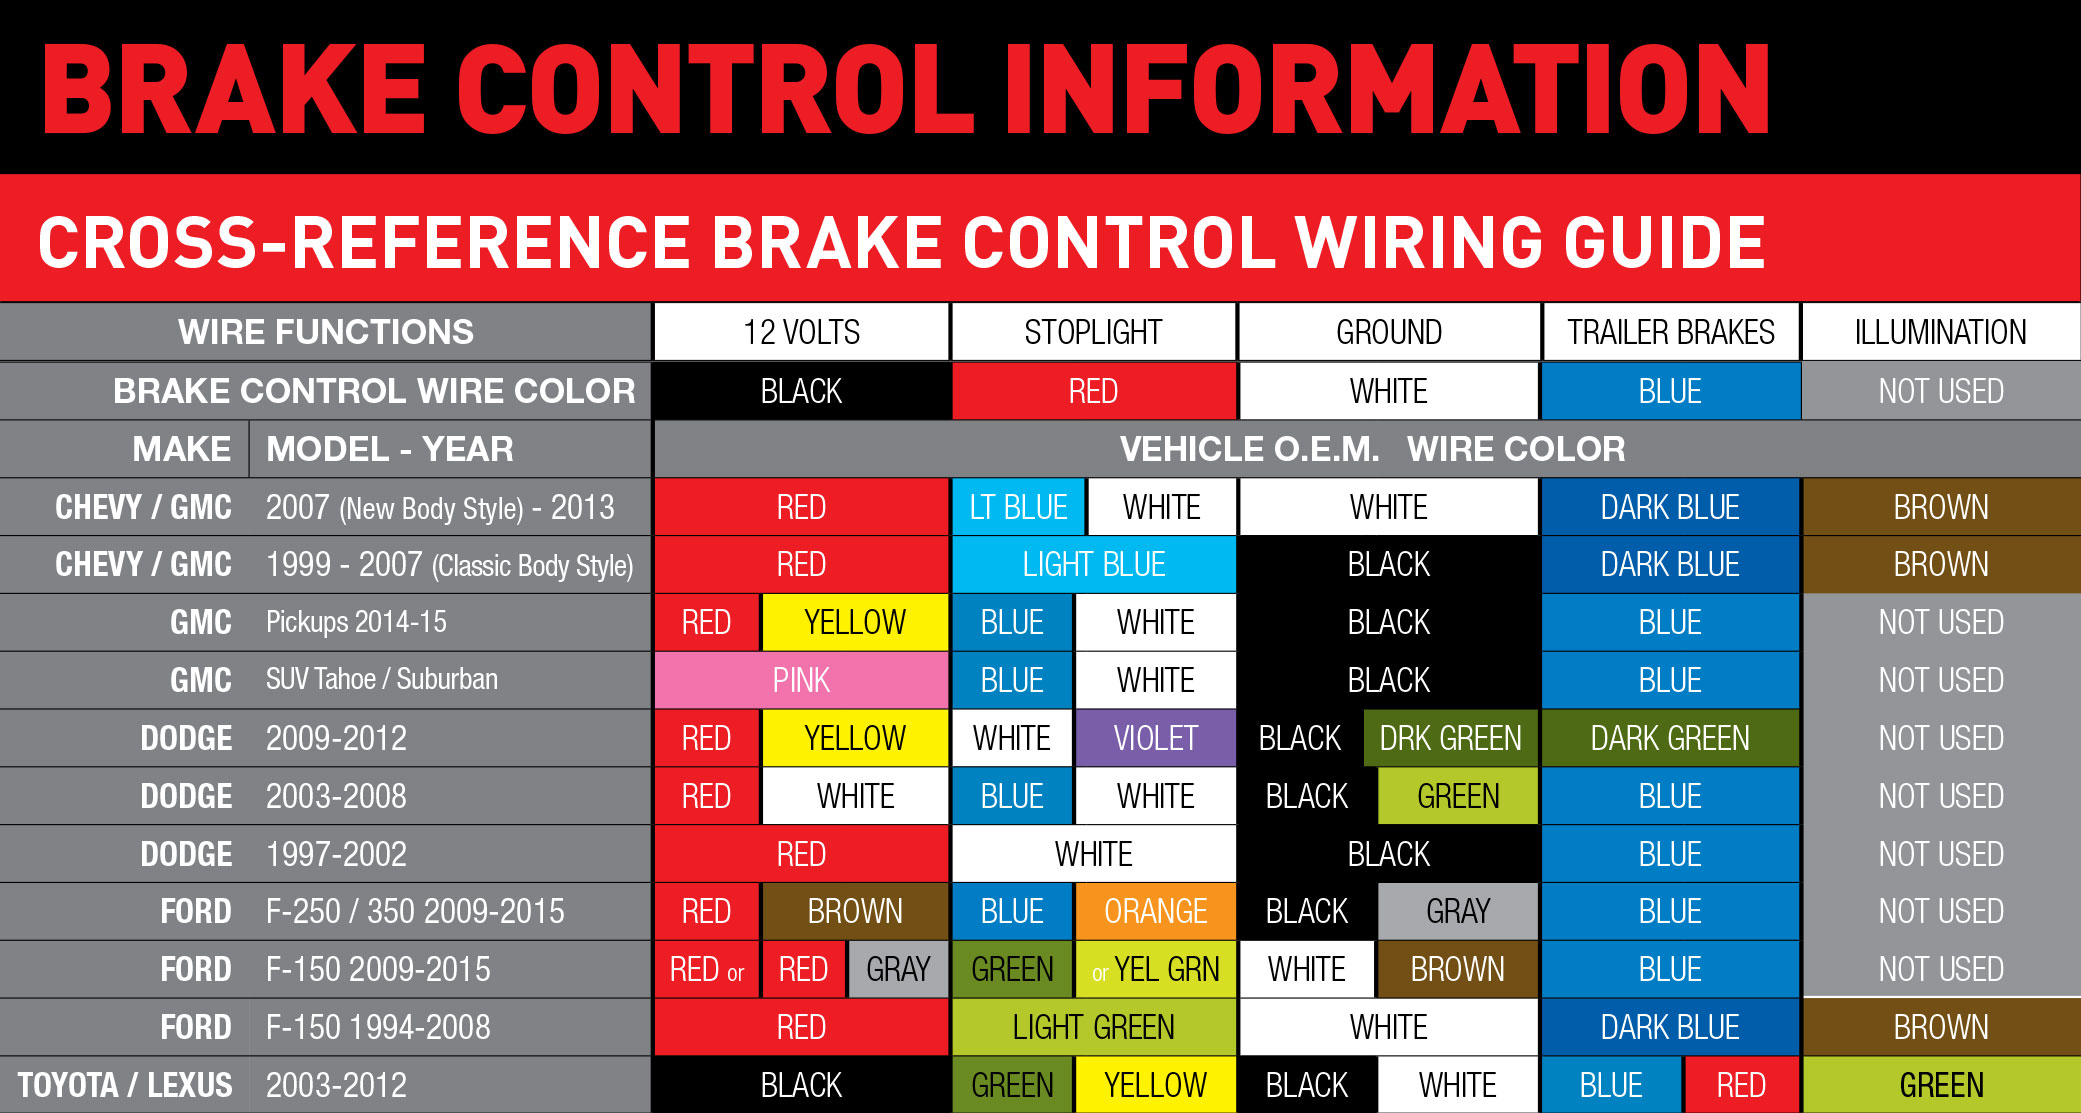 [SCHEMATICS_4HG]  Hopkins Brake Controller Wiring Diagram - Wiring Diagrams | Impulse Trailer Brake Wiring Diagram |  | karox.fr